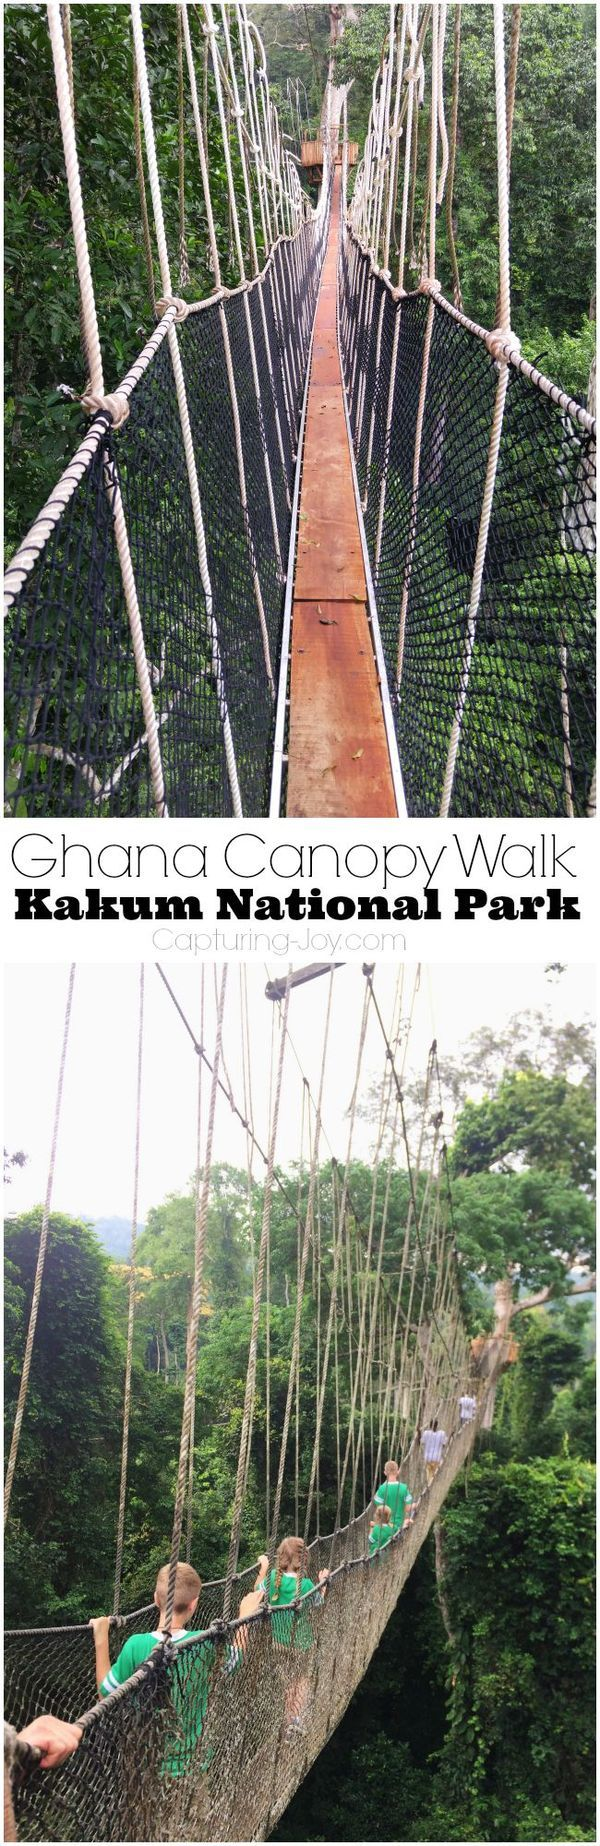 Ghana Canopy Walk Kakum National Park! Traveling tips for visiting Ghana with your family.